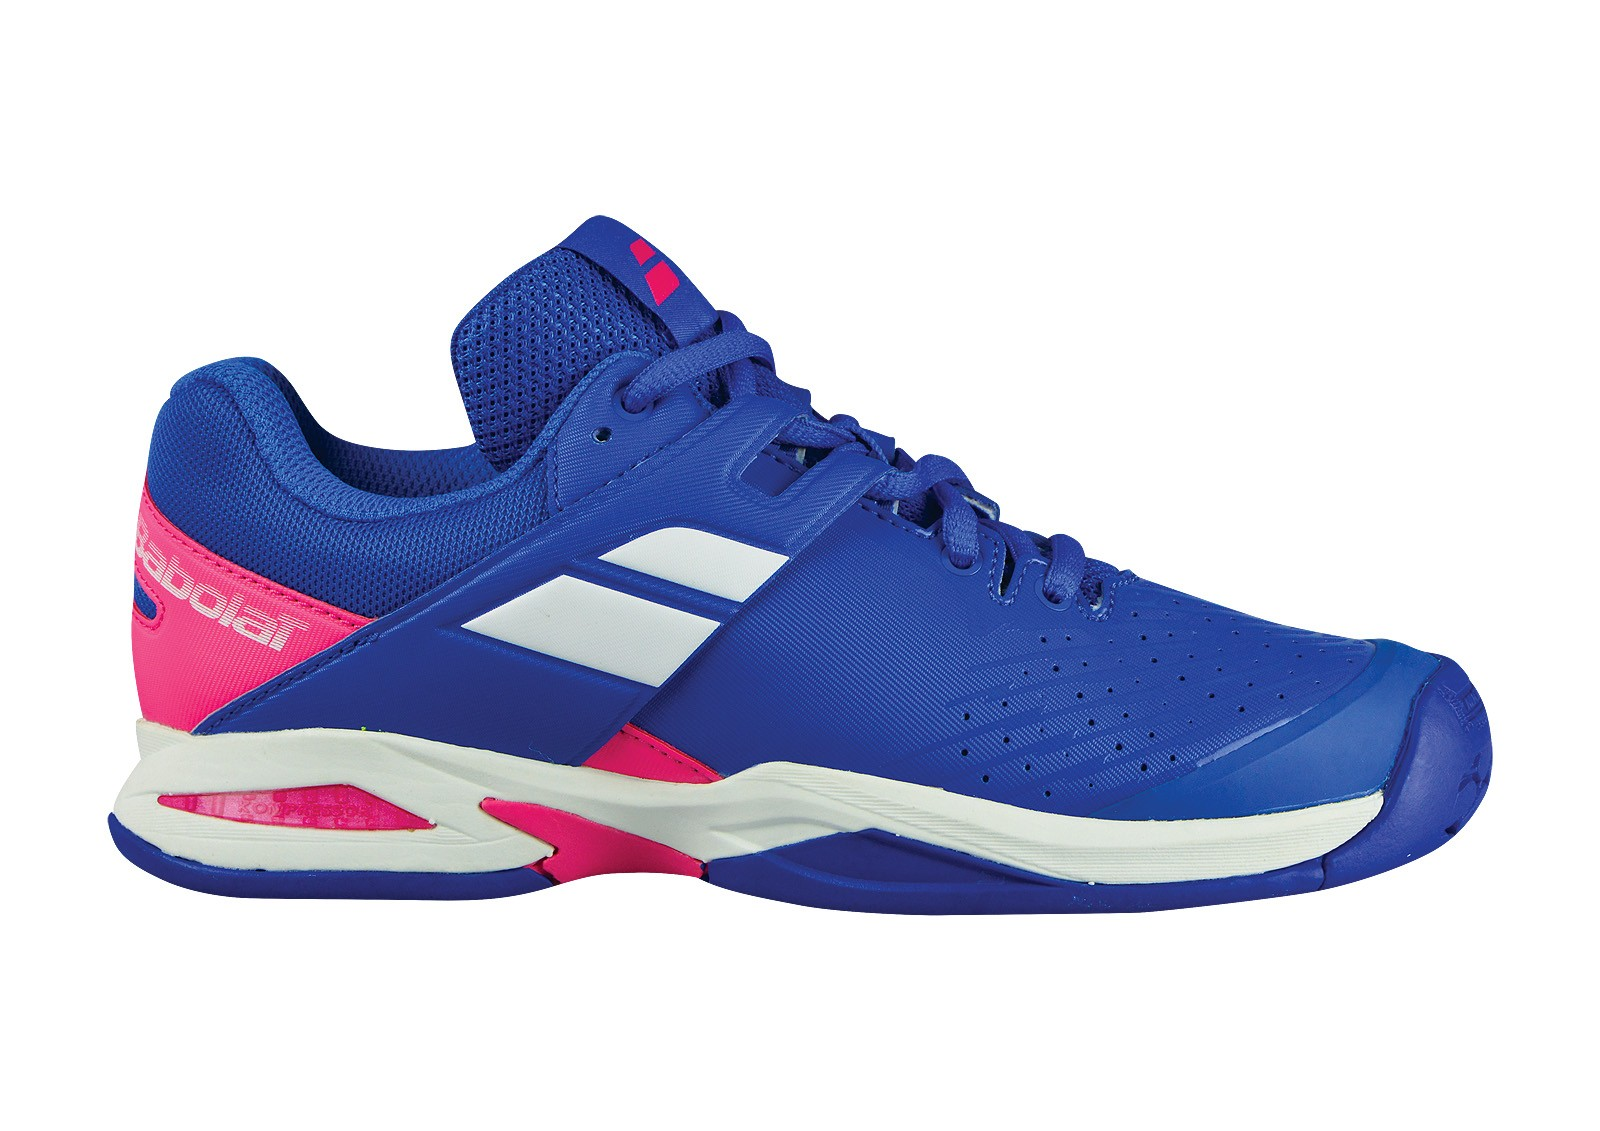 Buty tenisowe Babolat Propulse Junior Princess Blue